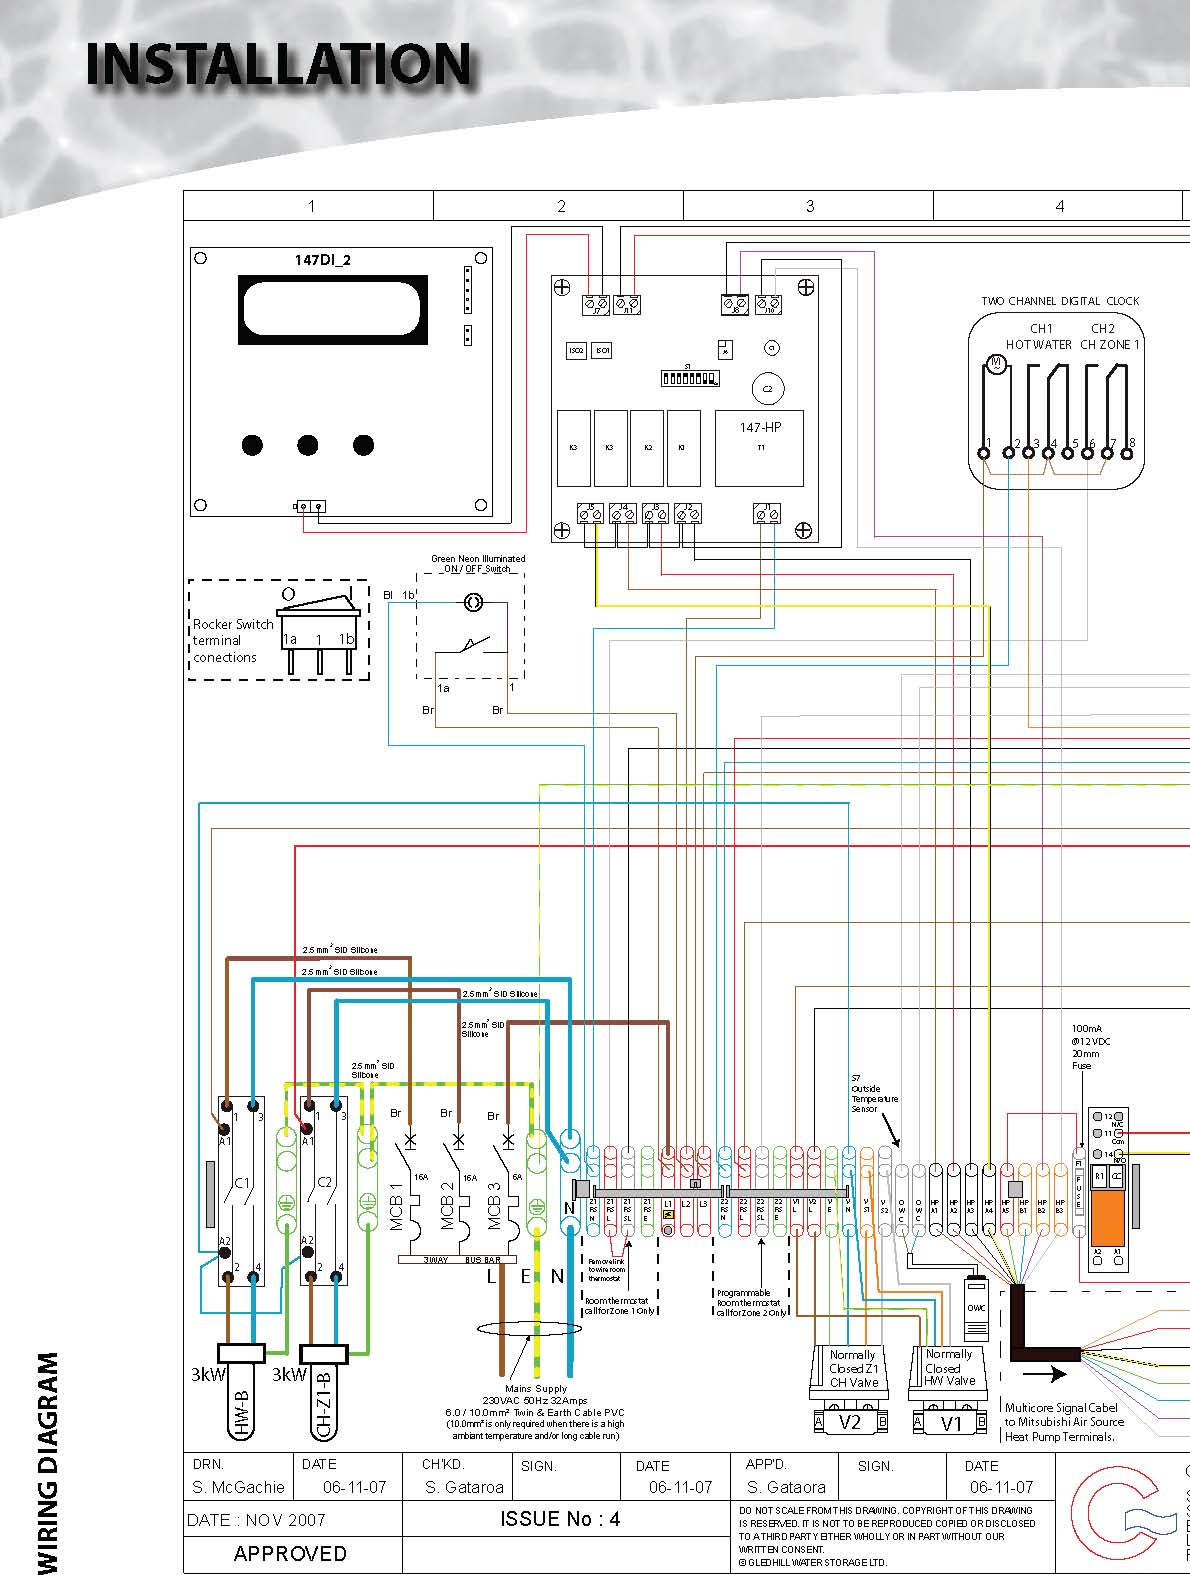 BoilerMate A-Cl HP-DEM on friendship bracelet diagrams, electronic circuit diagrams, gmc fuse box diagrams, pinout diagrams, internet of things diagrams, sincgars radio configurations diagrams, electrical diagrams, honda motorcycle repair diagrams, series and parallel circuits diagrams, switch diagrams, lighting diagrams, engine diagrams, smart car diagrams, troubleshooting diagrams, battery diagrams, motor diagrams, led circuit diagrams, transformer diagrams, hvac diagrams,